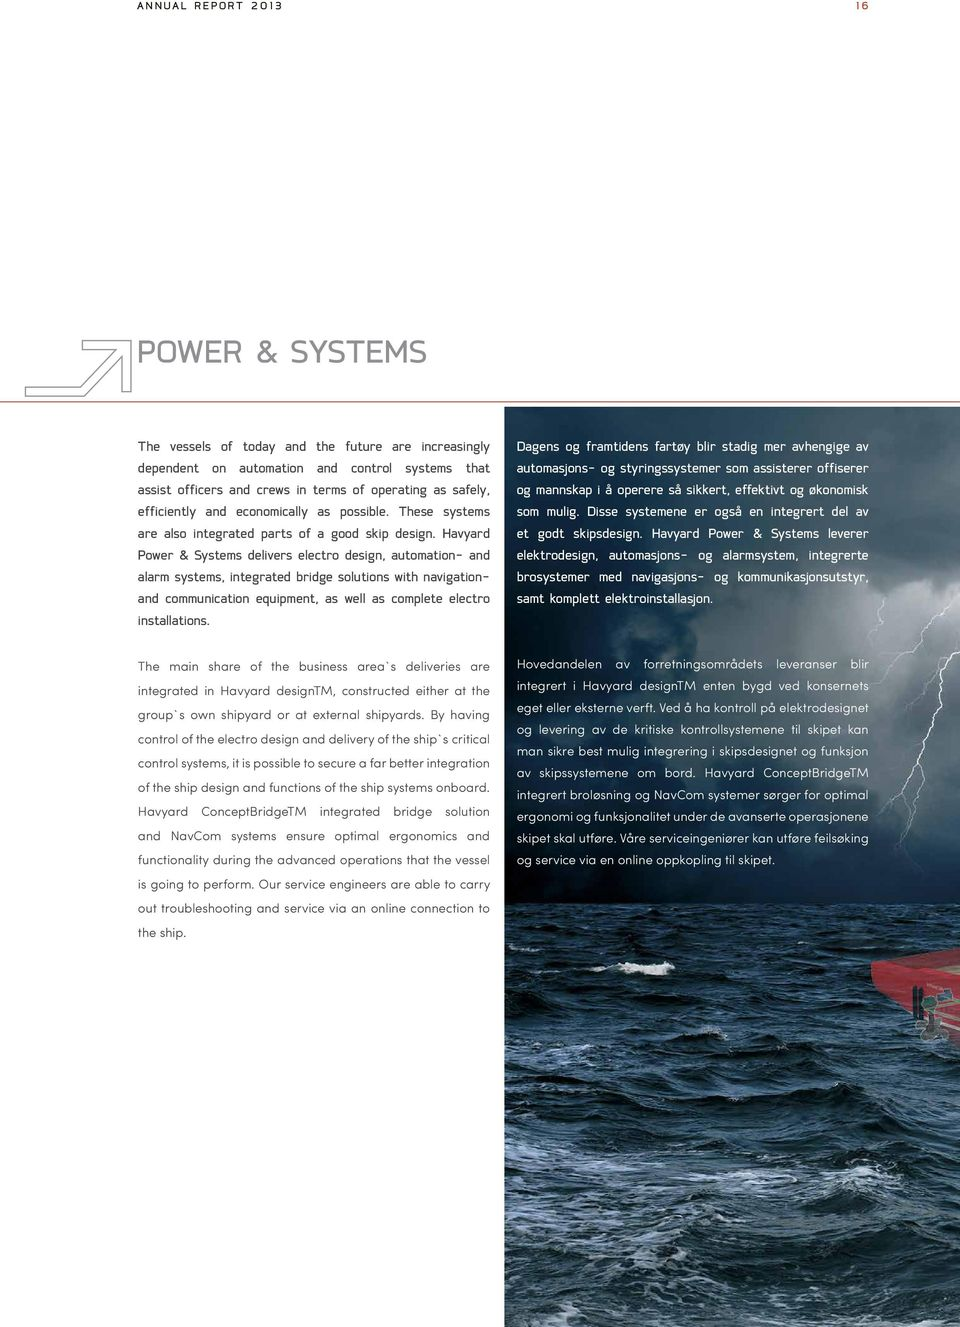 Havyard Power & Systems delivers electro design, automation- and alarm systems, integrated bridge solutions with navigationand communication equipment, as well as complete electro installations.